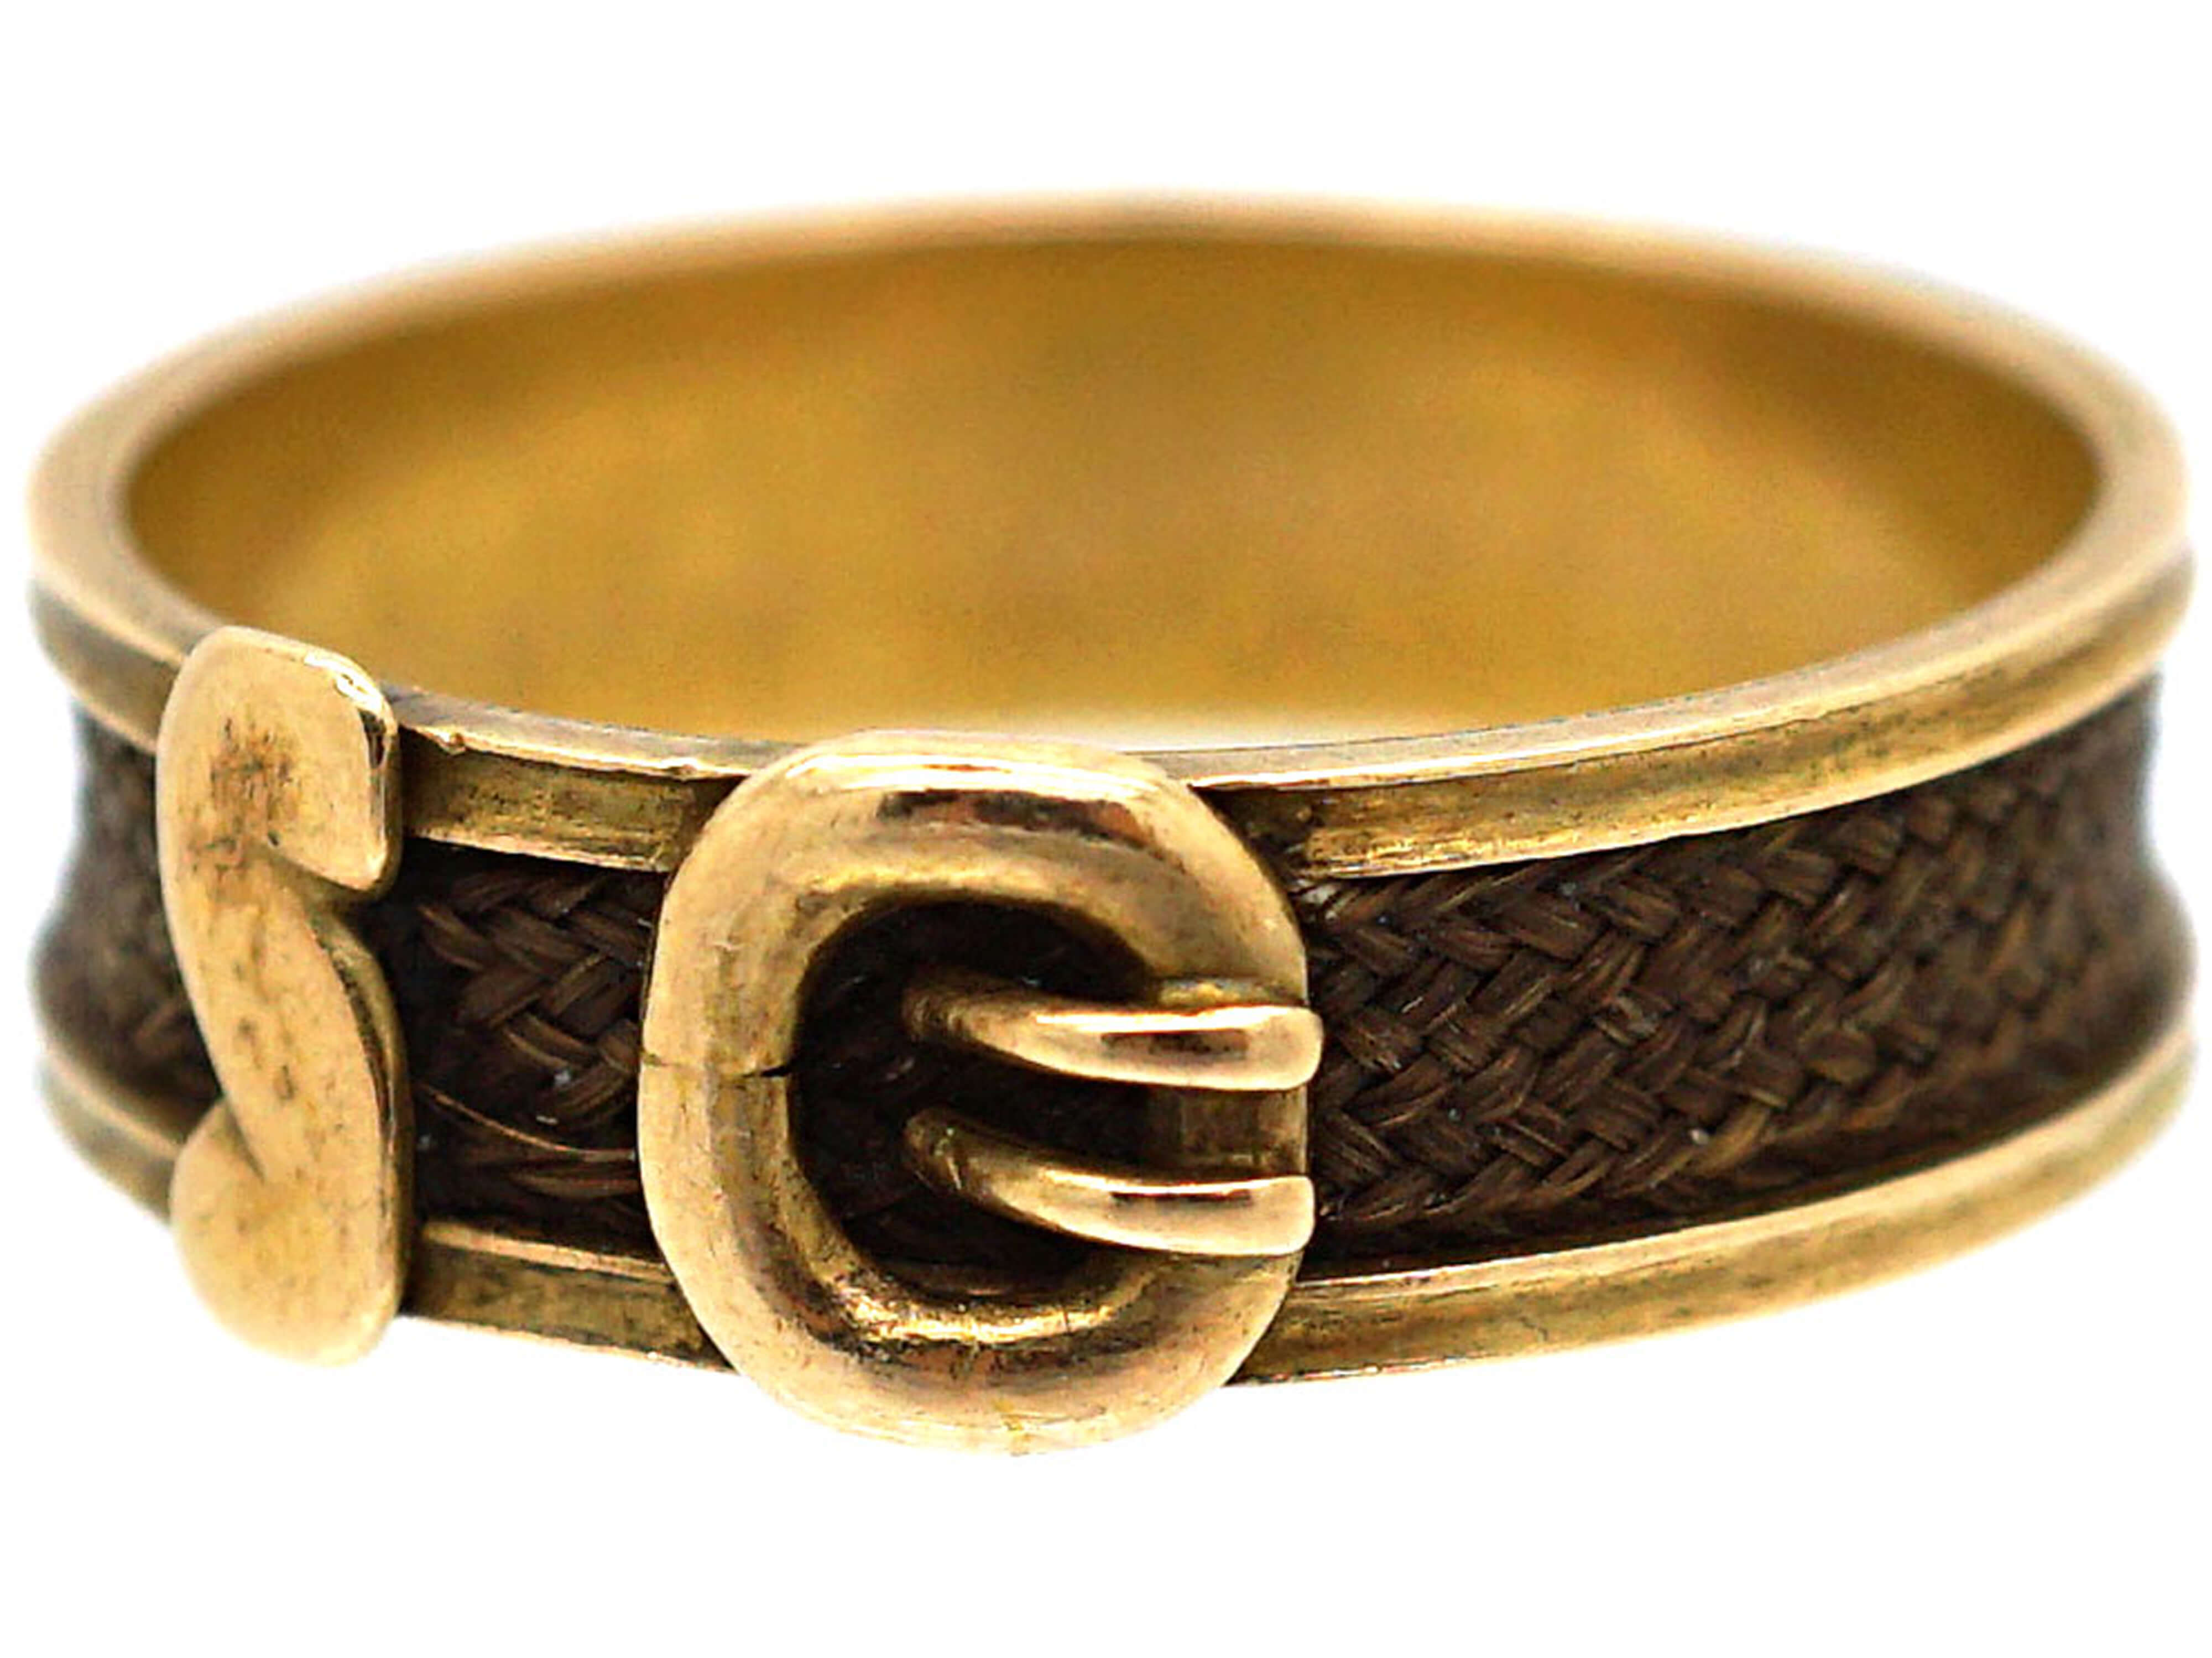 Victorian 18ct Gold & Hair Mourning Ring with Buckle Design